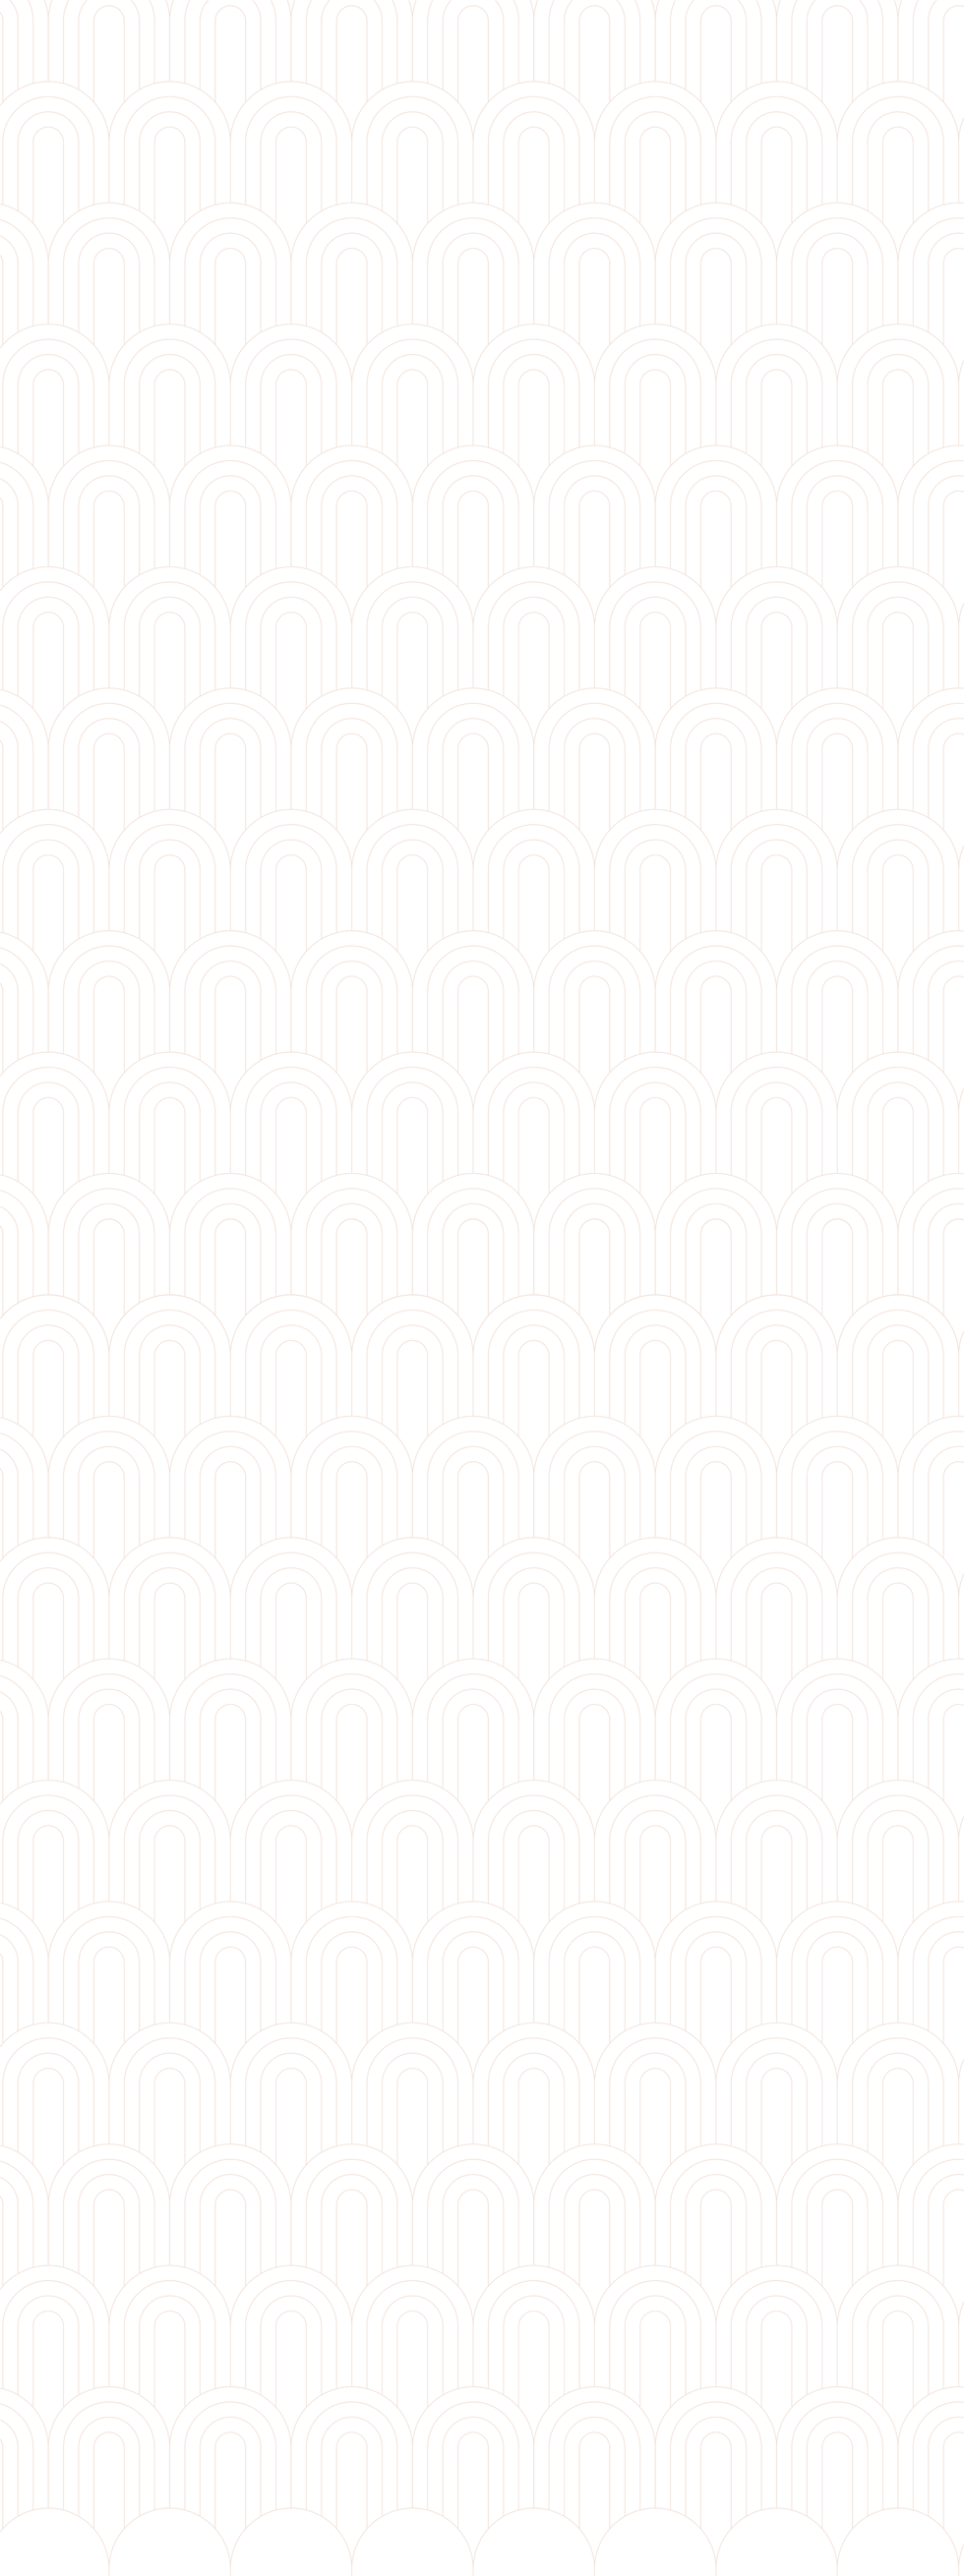 curves-texture.png